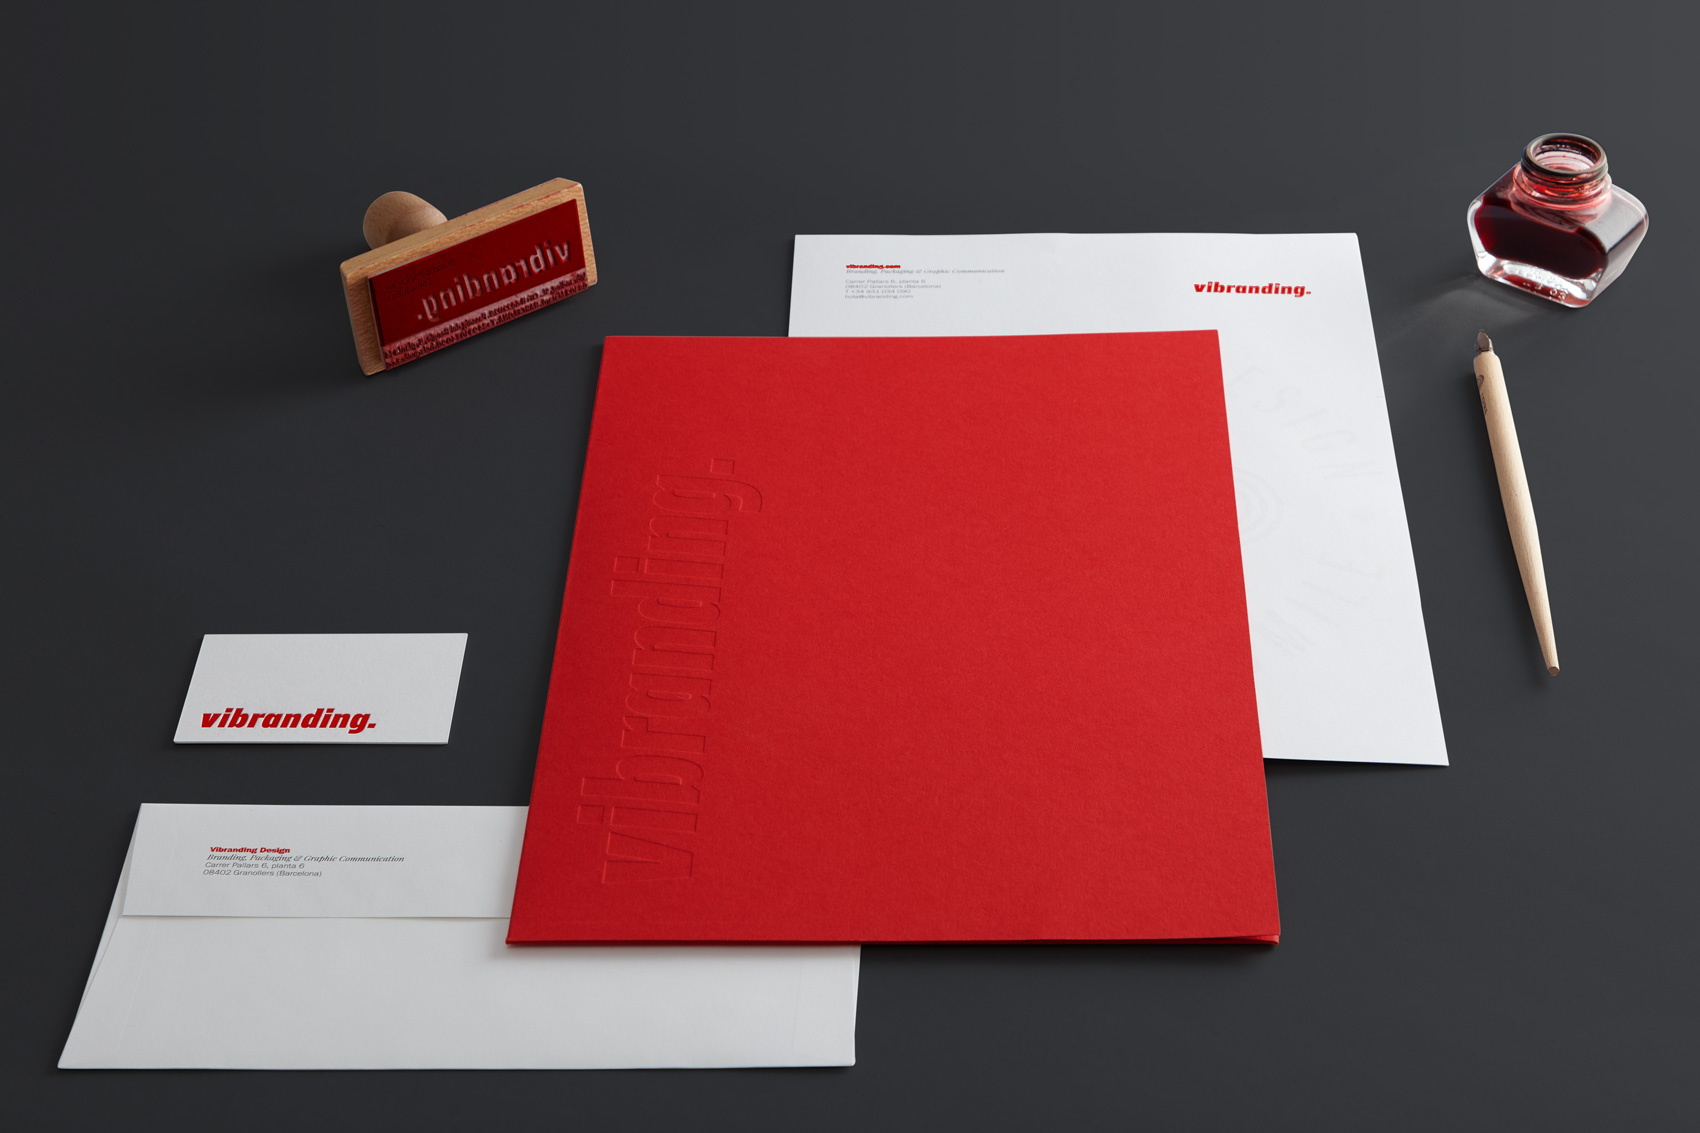 Stationery graphic design Vibranding branding visit cards